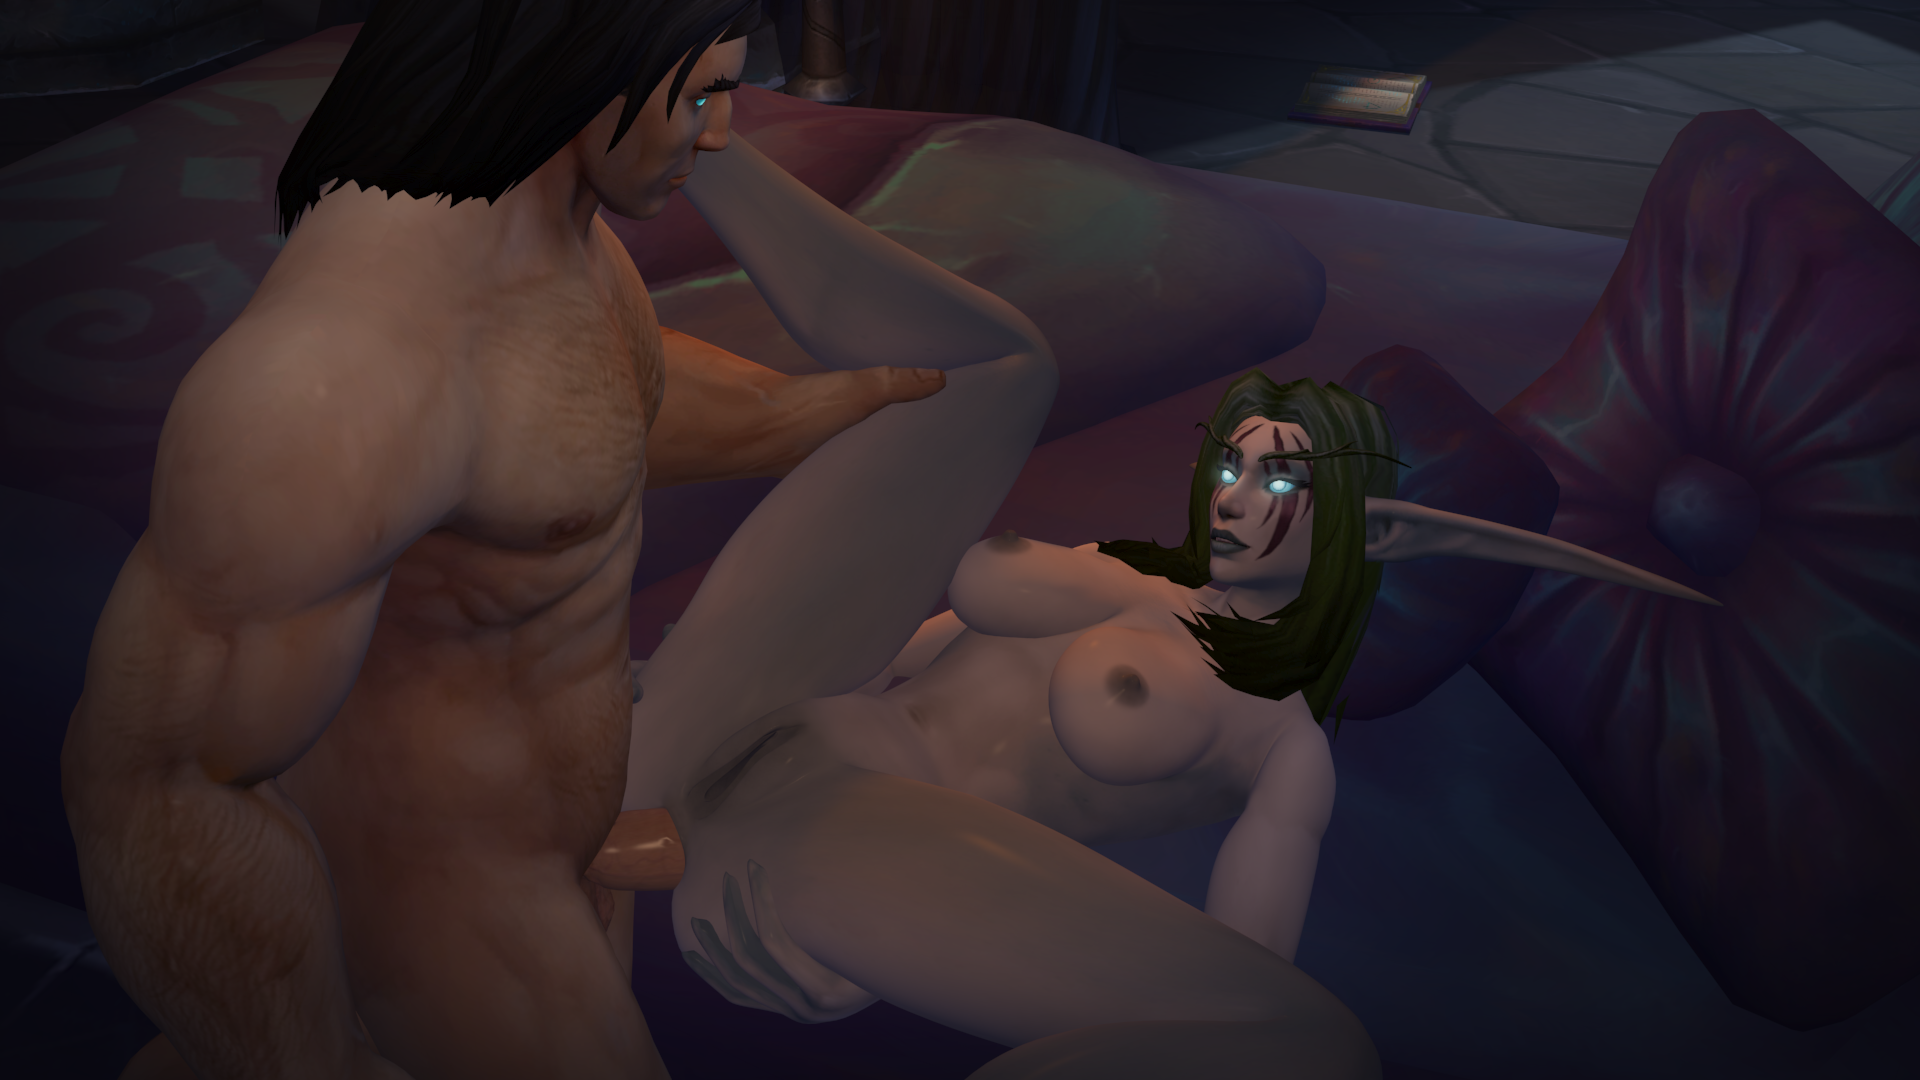 Night elf fucking picture porncraft picture